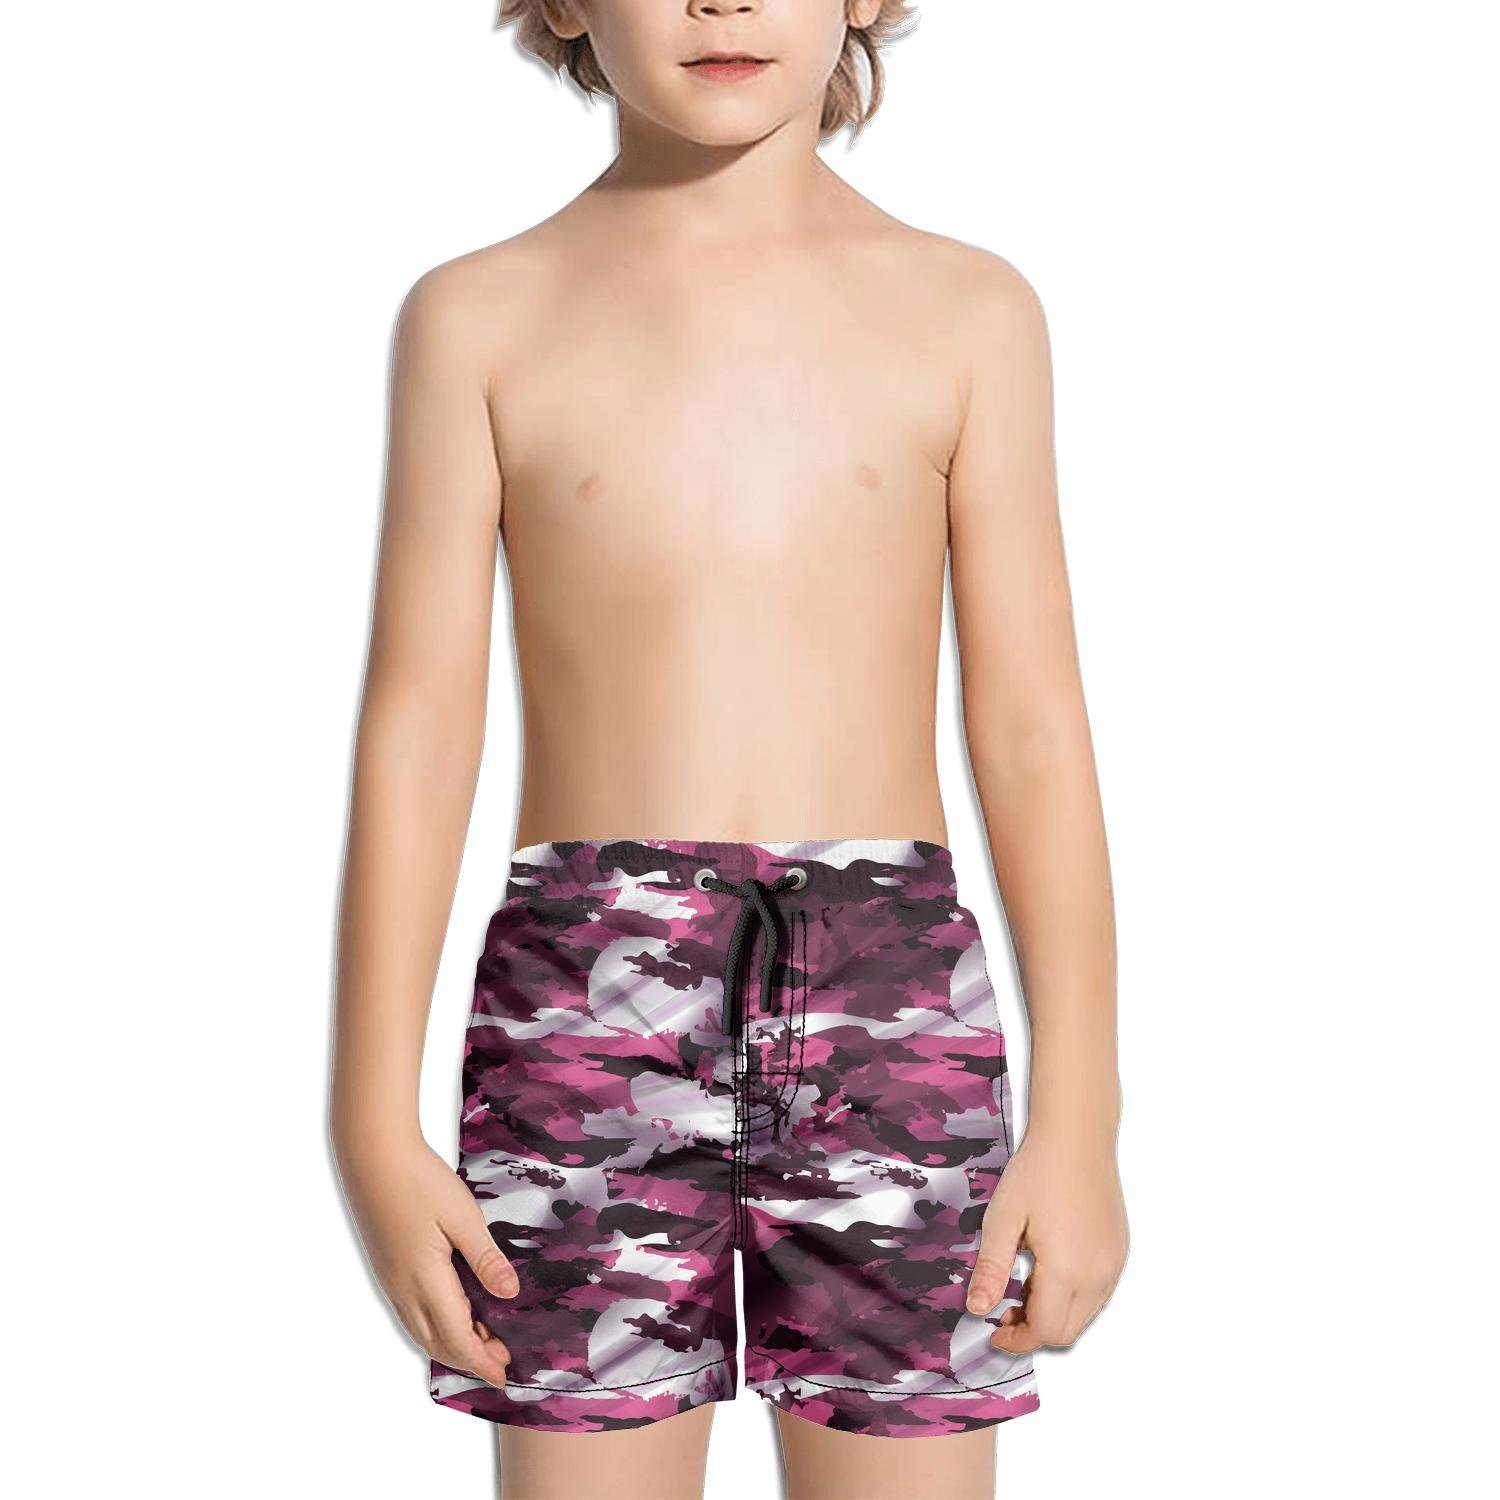 Lenard Hughes Boys Quick Dry Beach Shorts with Pockets Pink camo Sign Swim Trunks for Summer